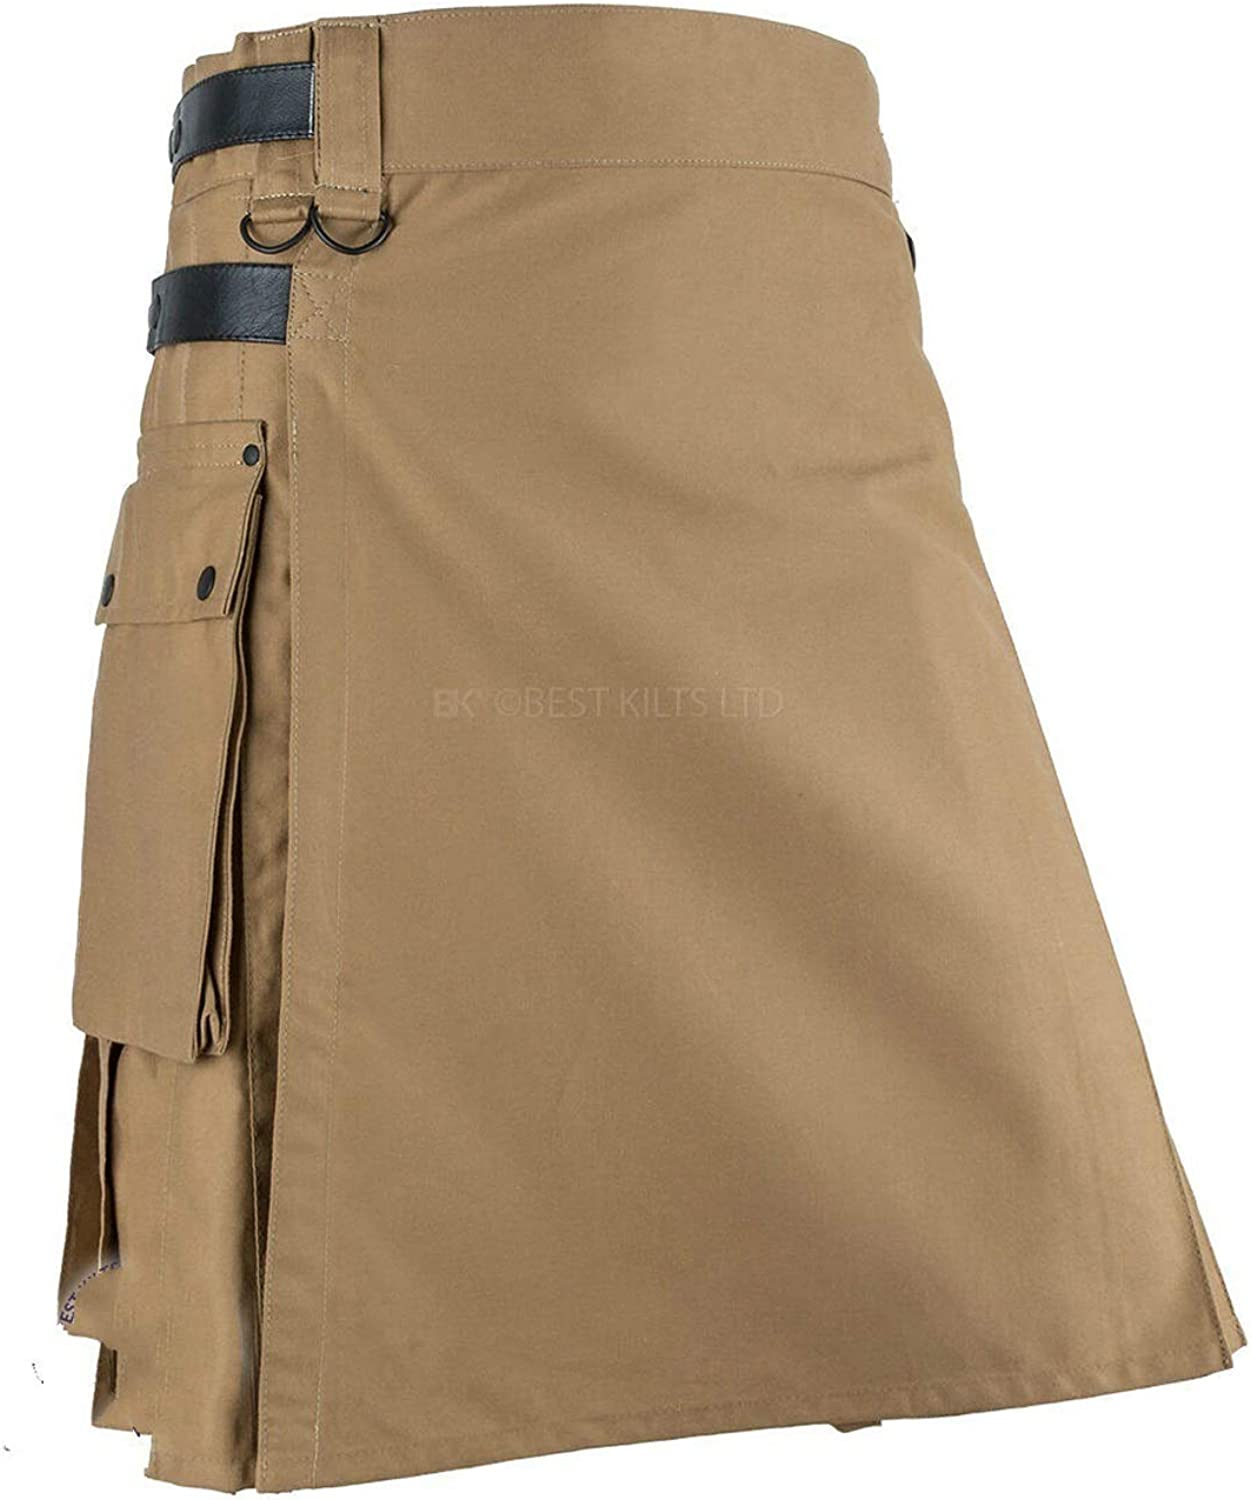 Tartan Utility Kilts for Men Straps Selling and selling lowest price Kilt and with Leather